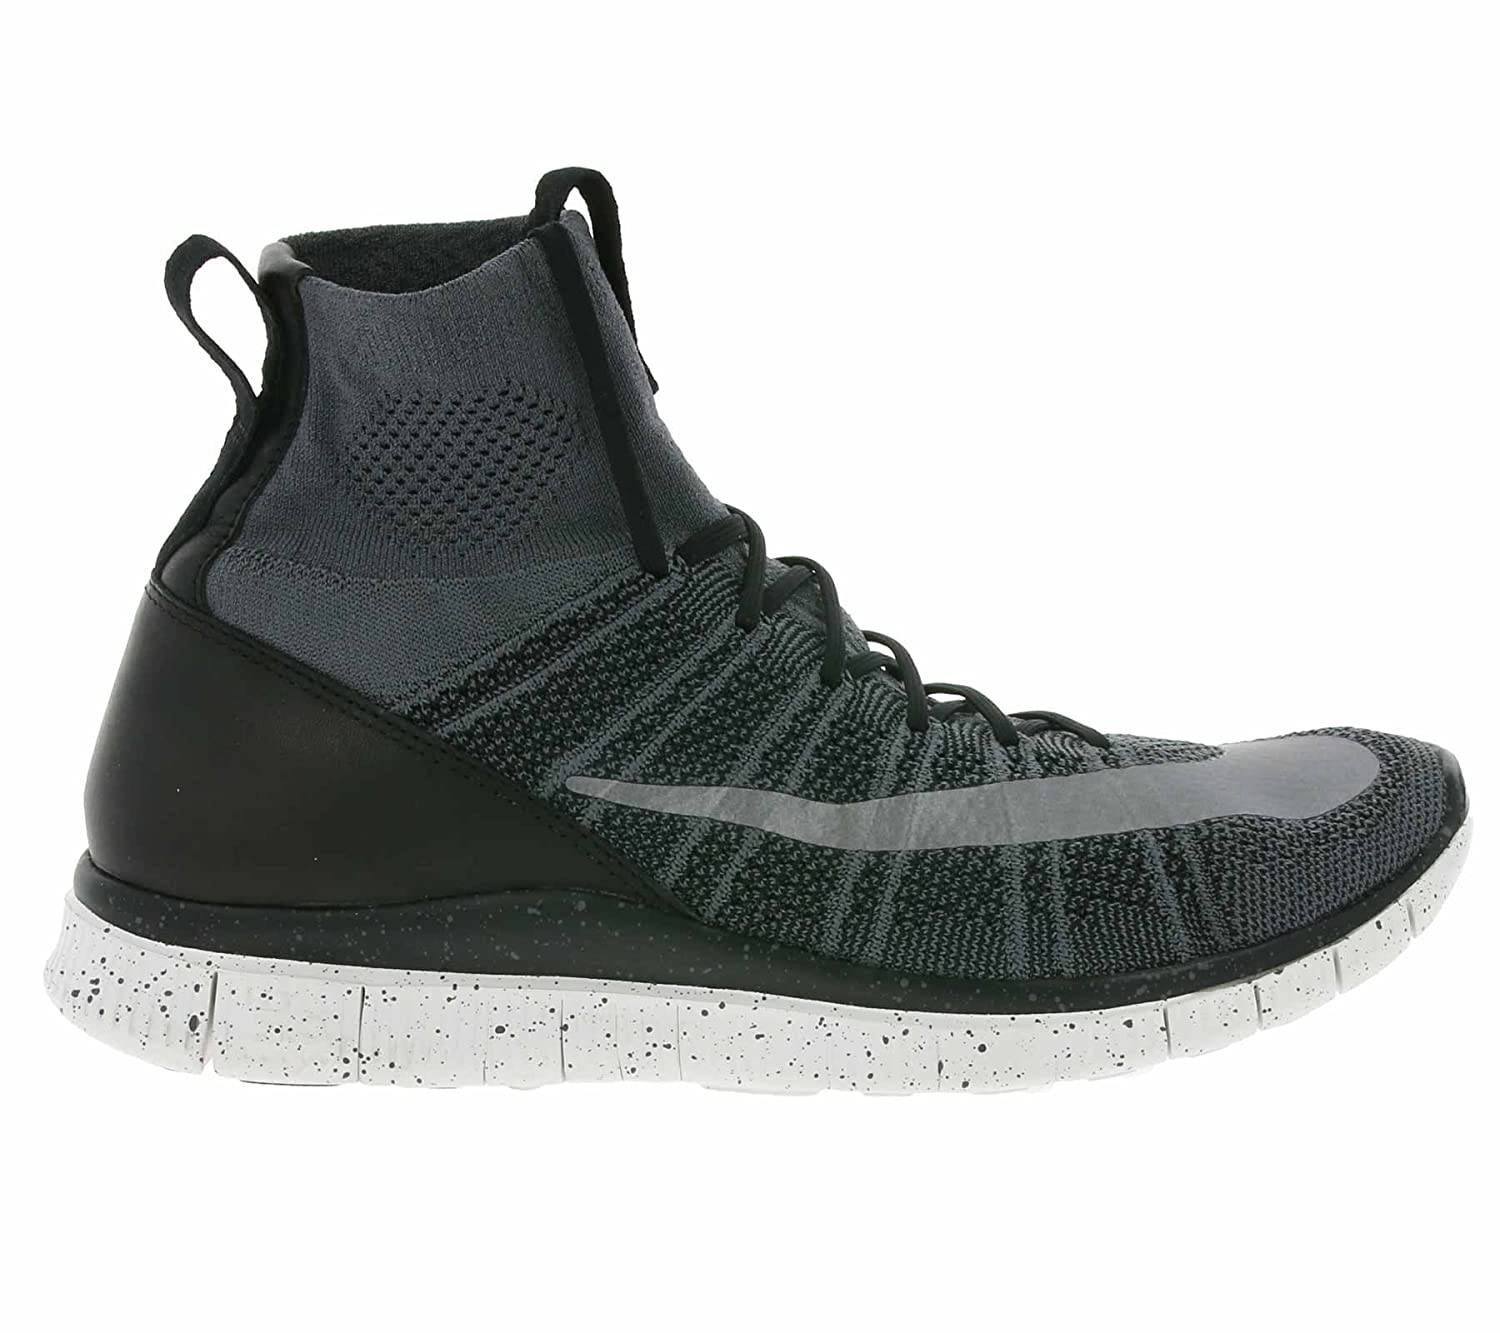 the latest b8fe9 0993c Amazon.com | NIKE Free Flyknit Mercurial CR7 805554-004  Grey/Black/White/Silver Men's Shoes (Size 10) | Road Running